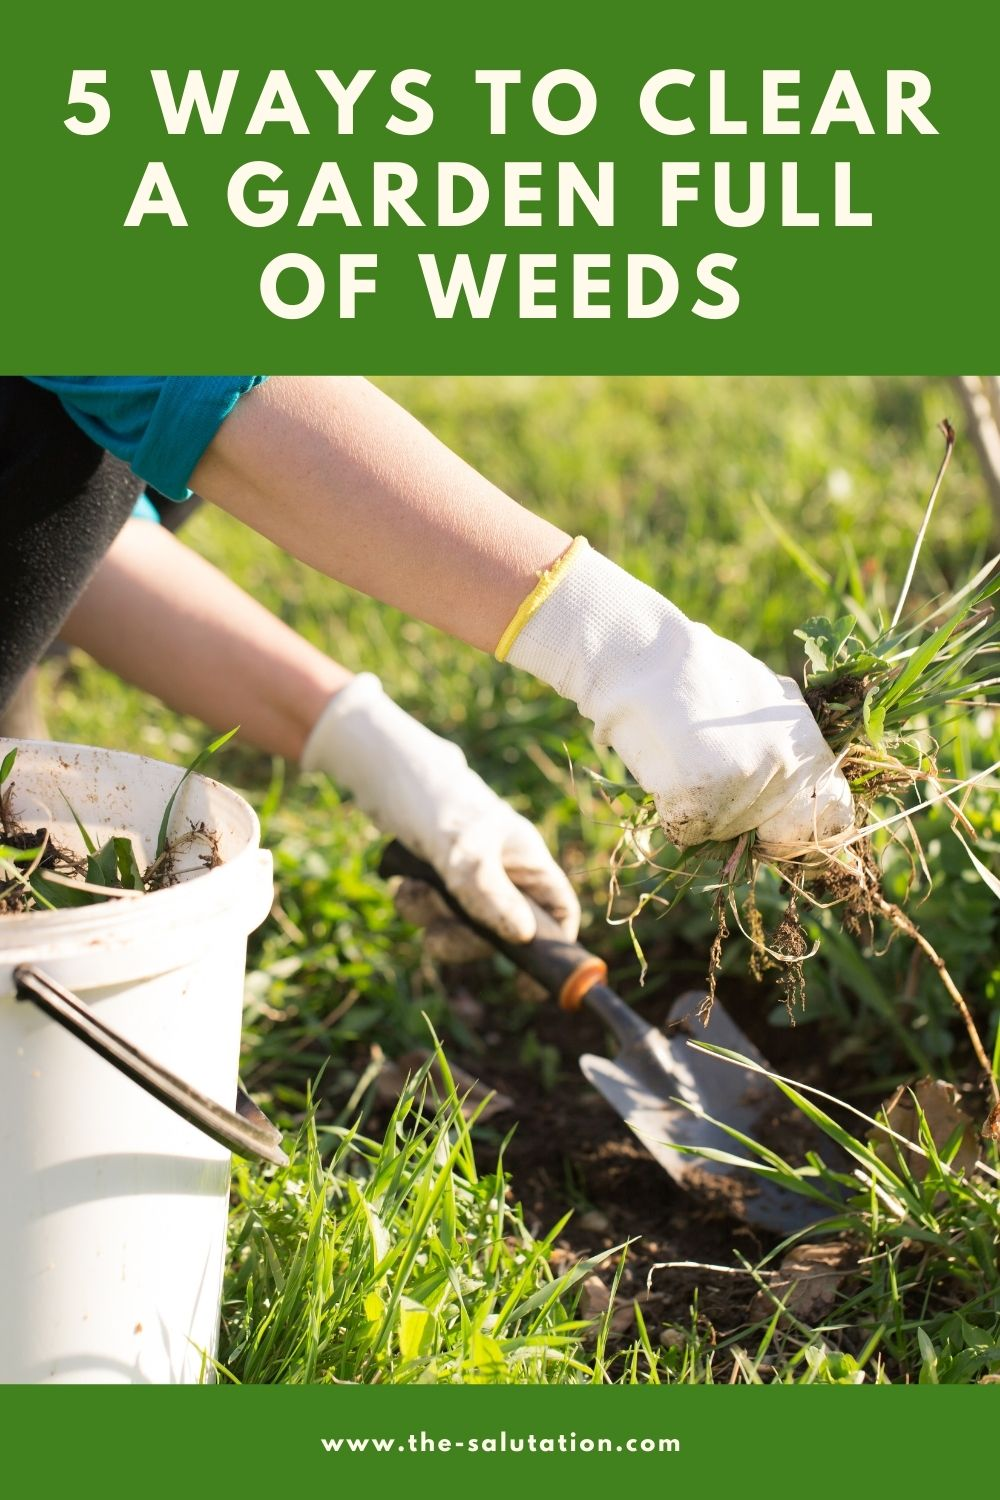 5 Ways to Clear a Garden Full of Weeds 2